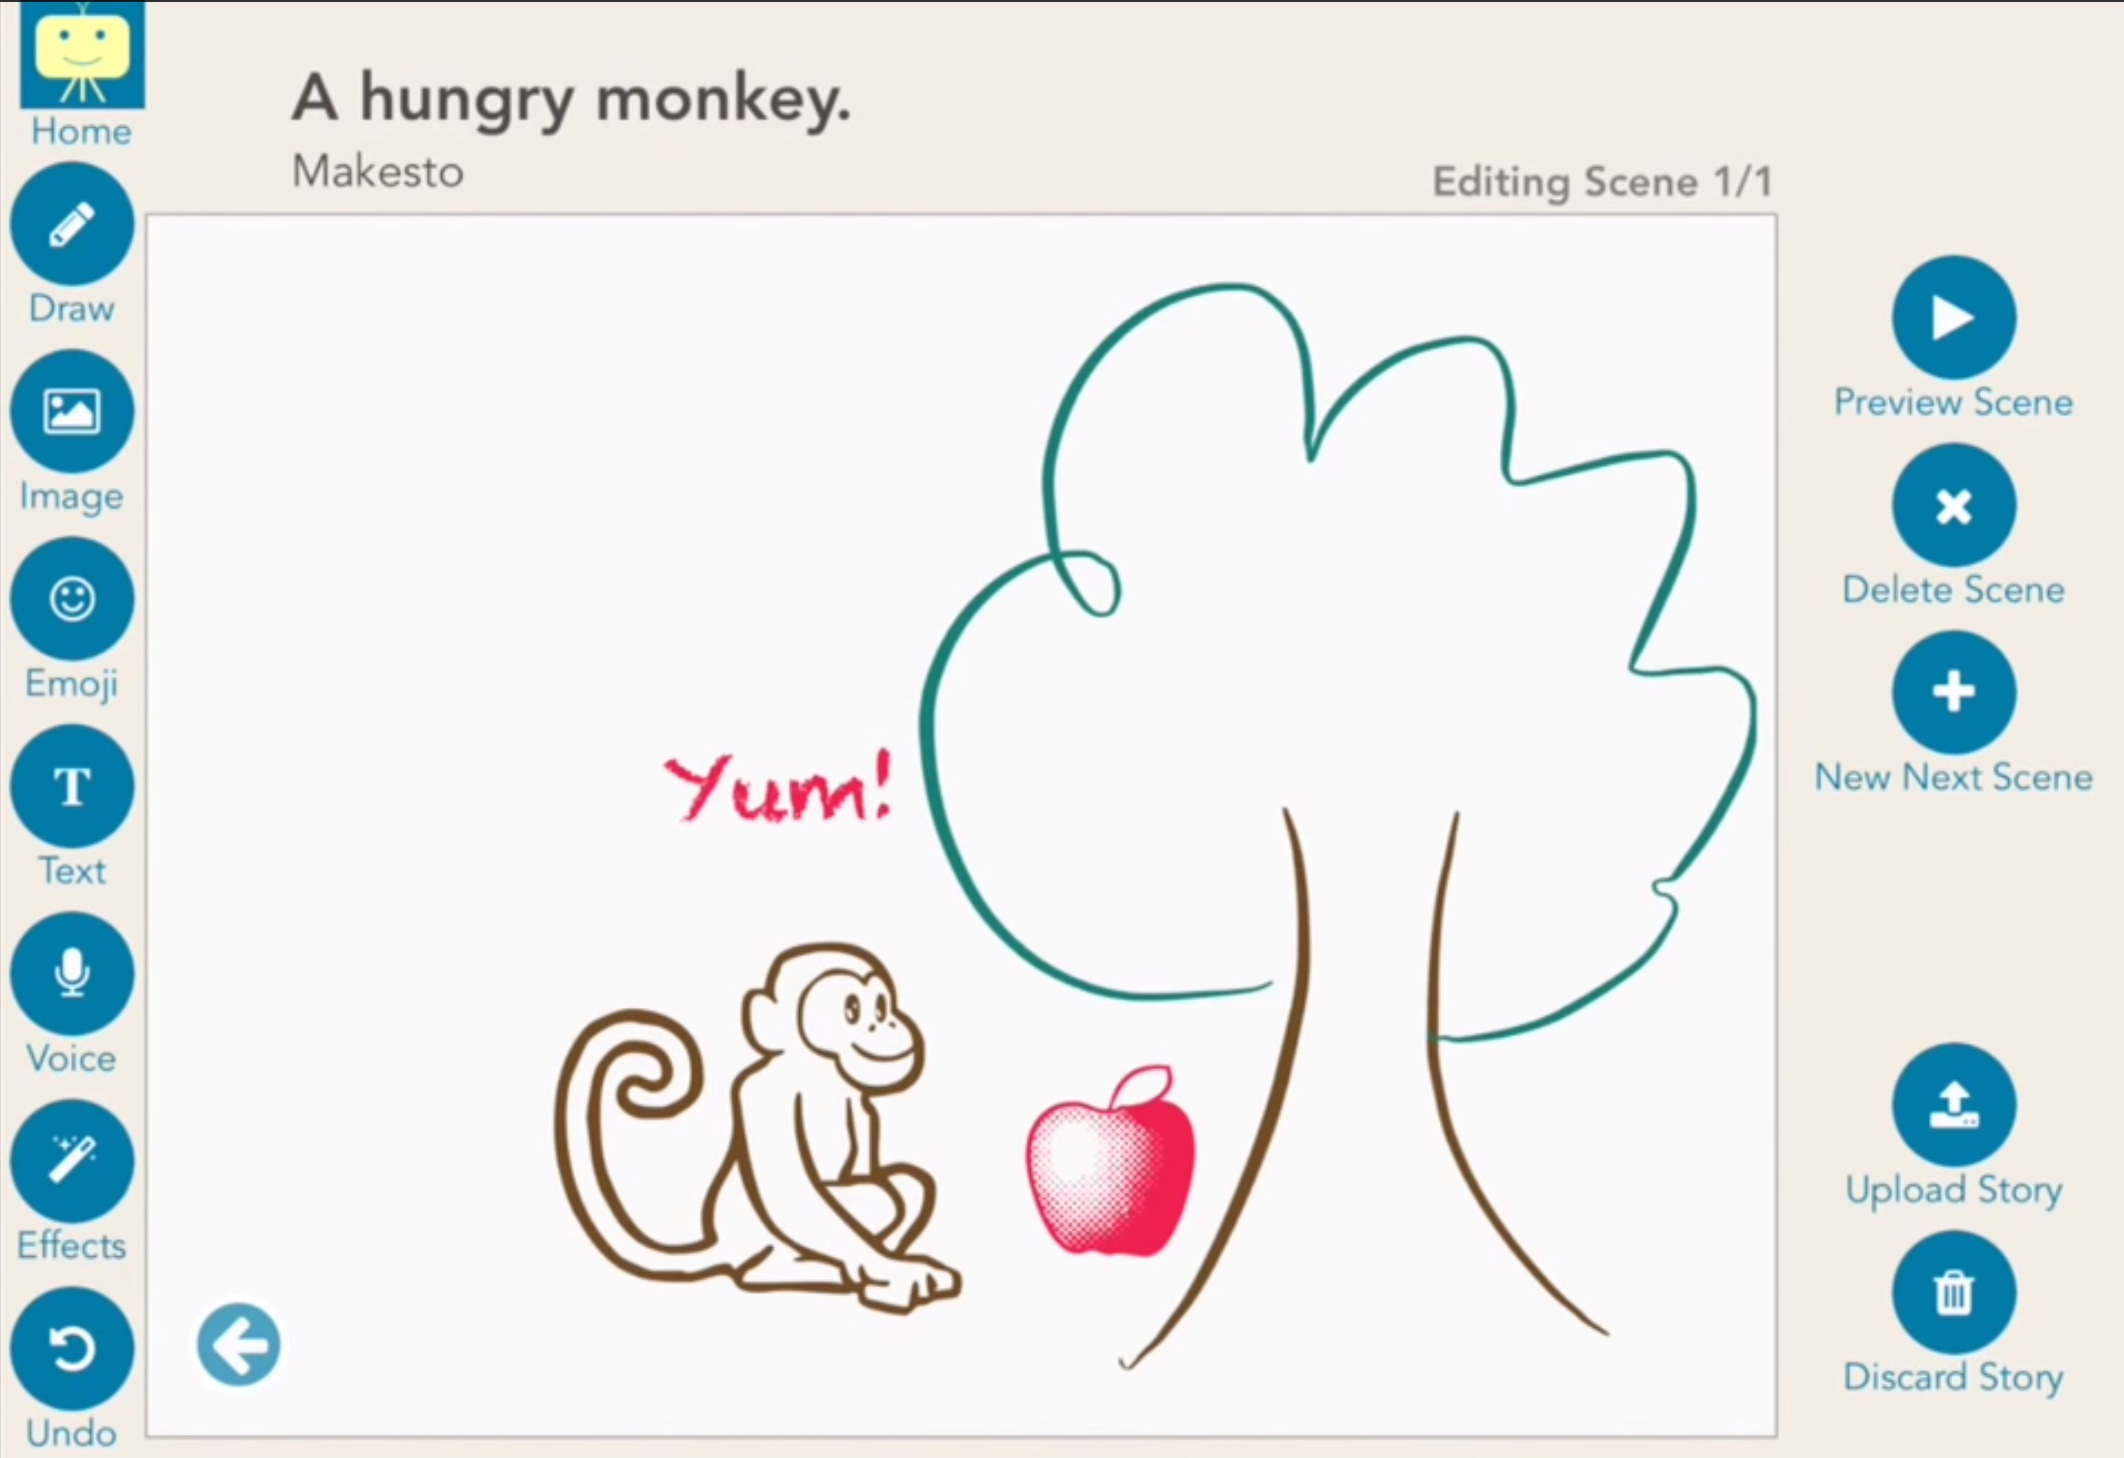 Makesto is a sweet, free storytelling app to let kids' imaginations run wild